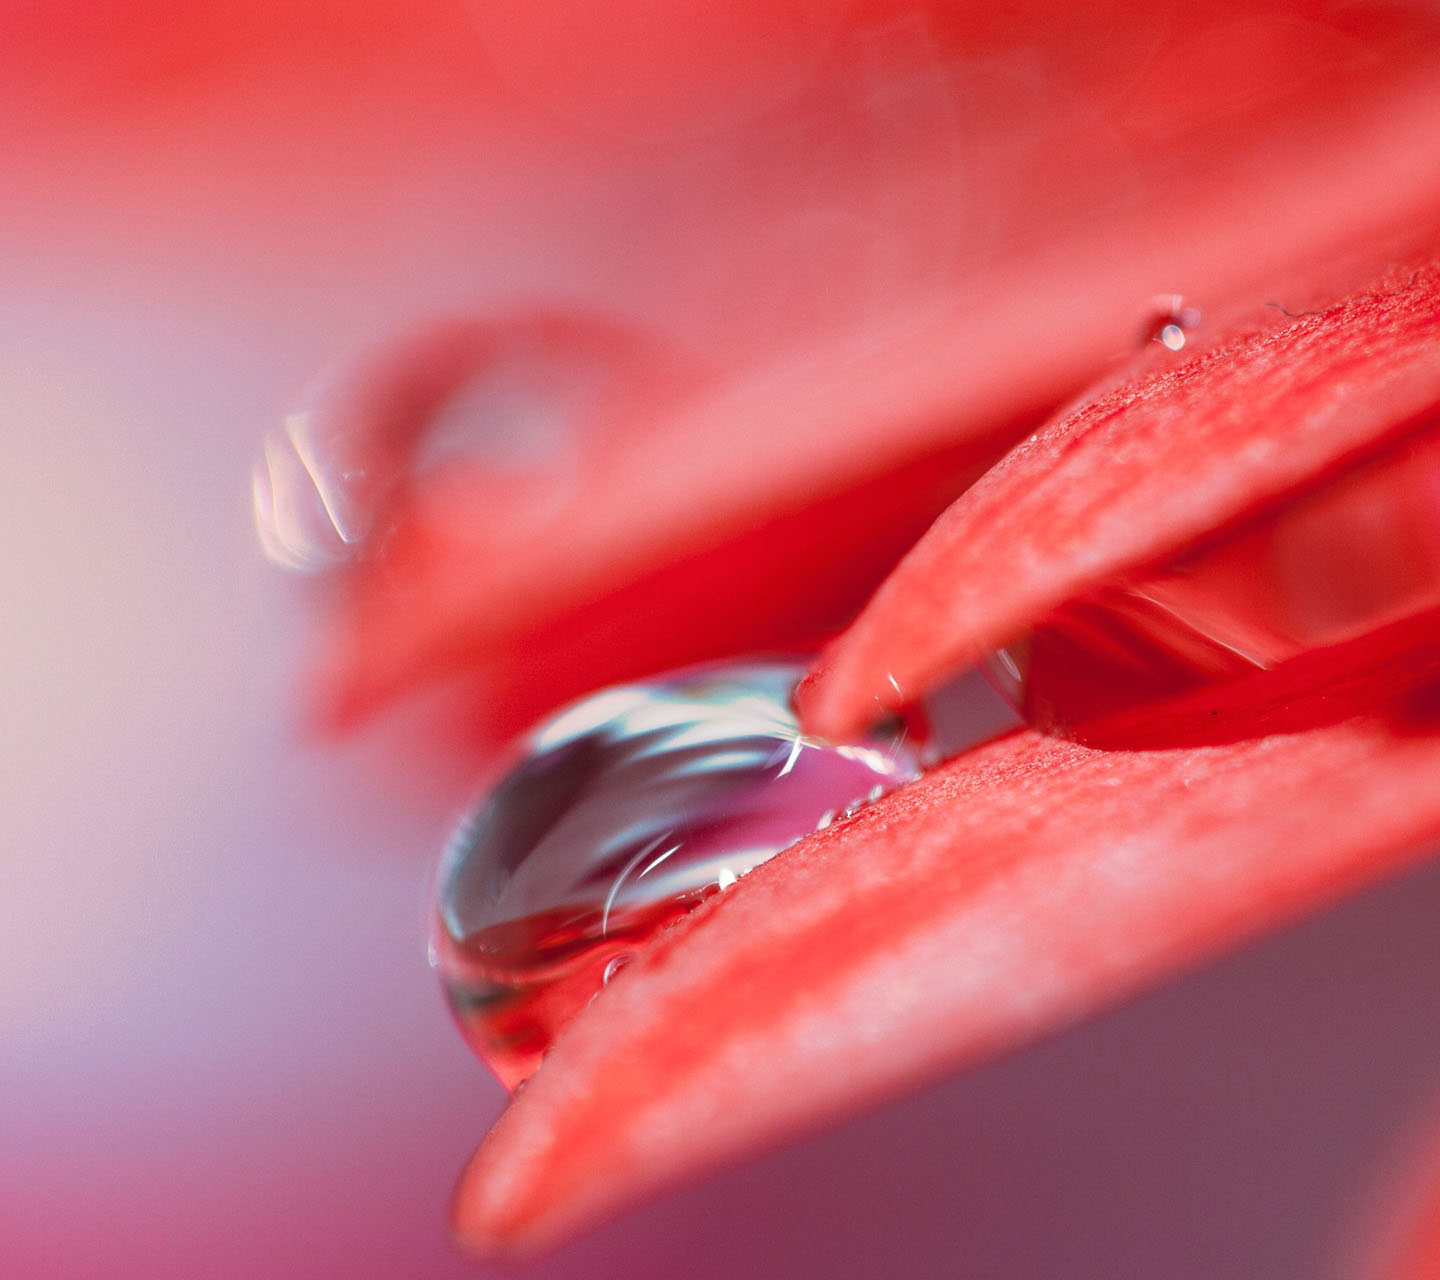 Galaxy S3 Wallpaper Water Drop On Red Petal Hd Wallpapers 9to5wallpapers